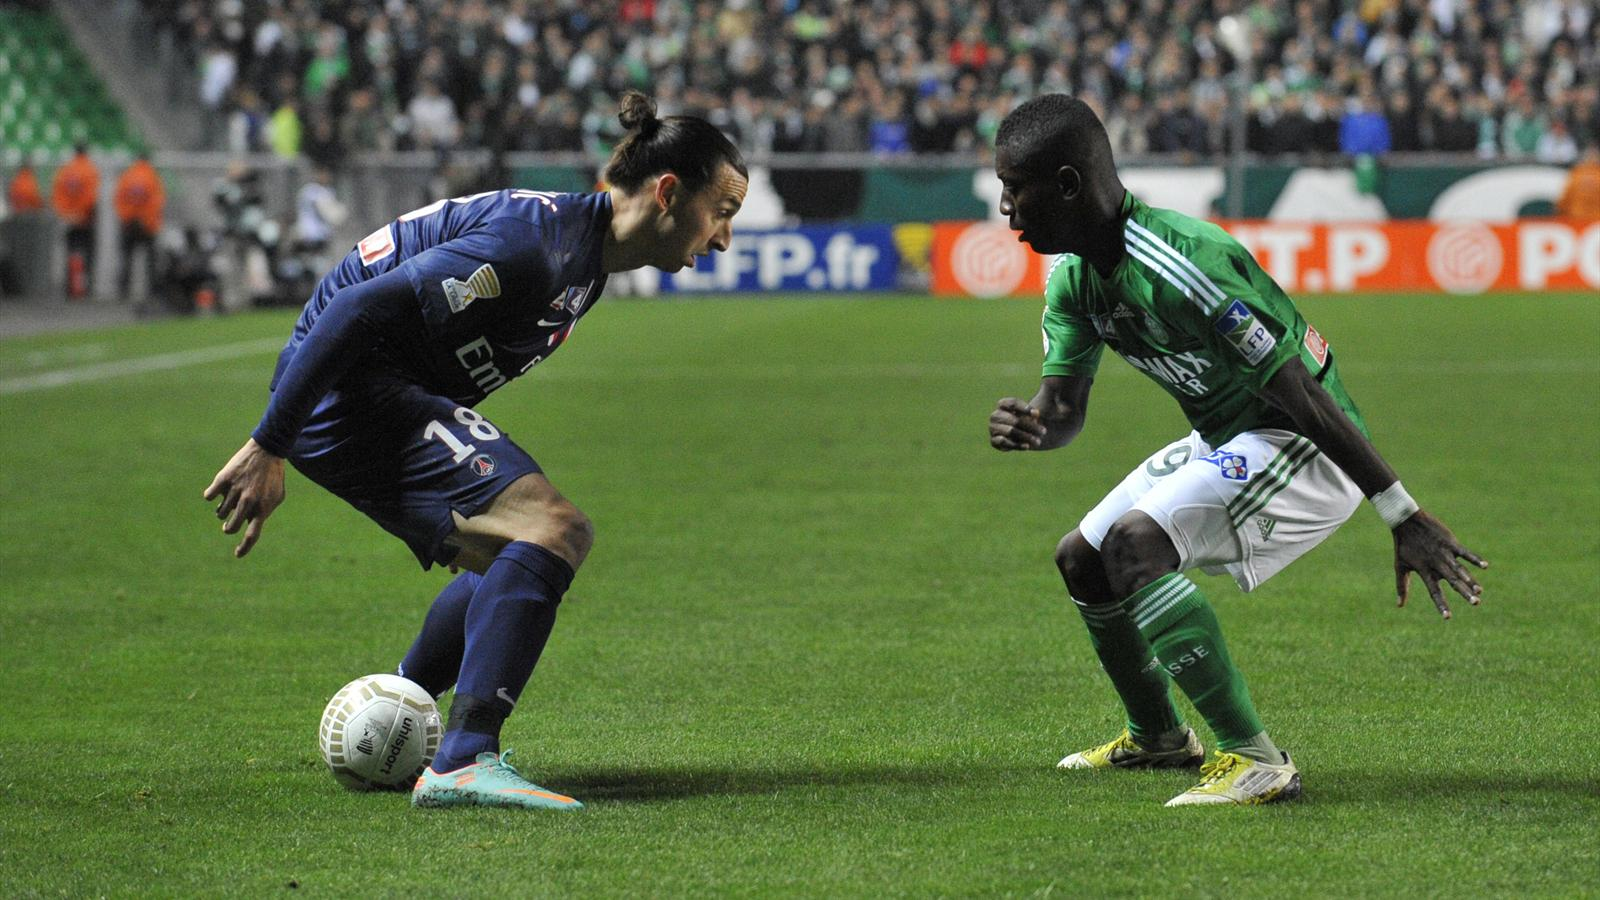 L 39 asse pi ge le psg coupe de la ligue 2012 2013 football eurosport - Coupe de la ligue 2013 14 ...